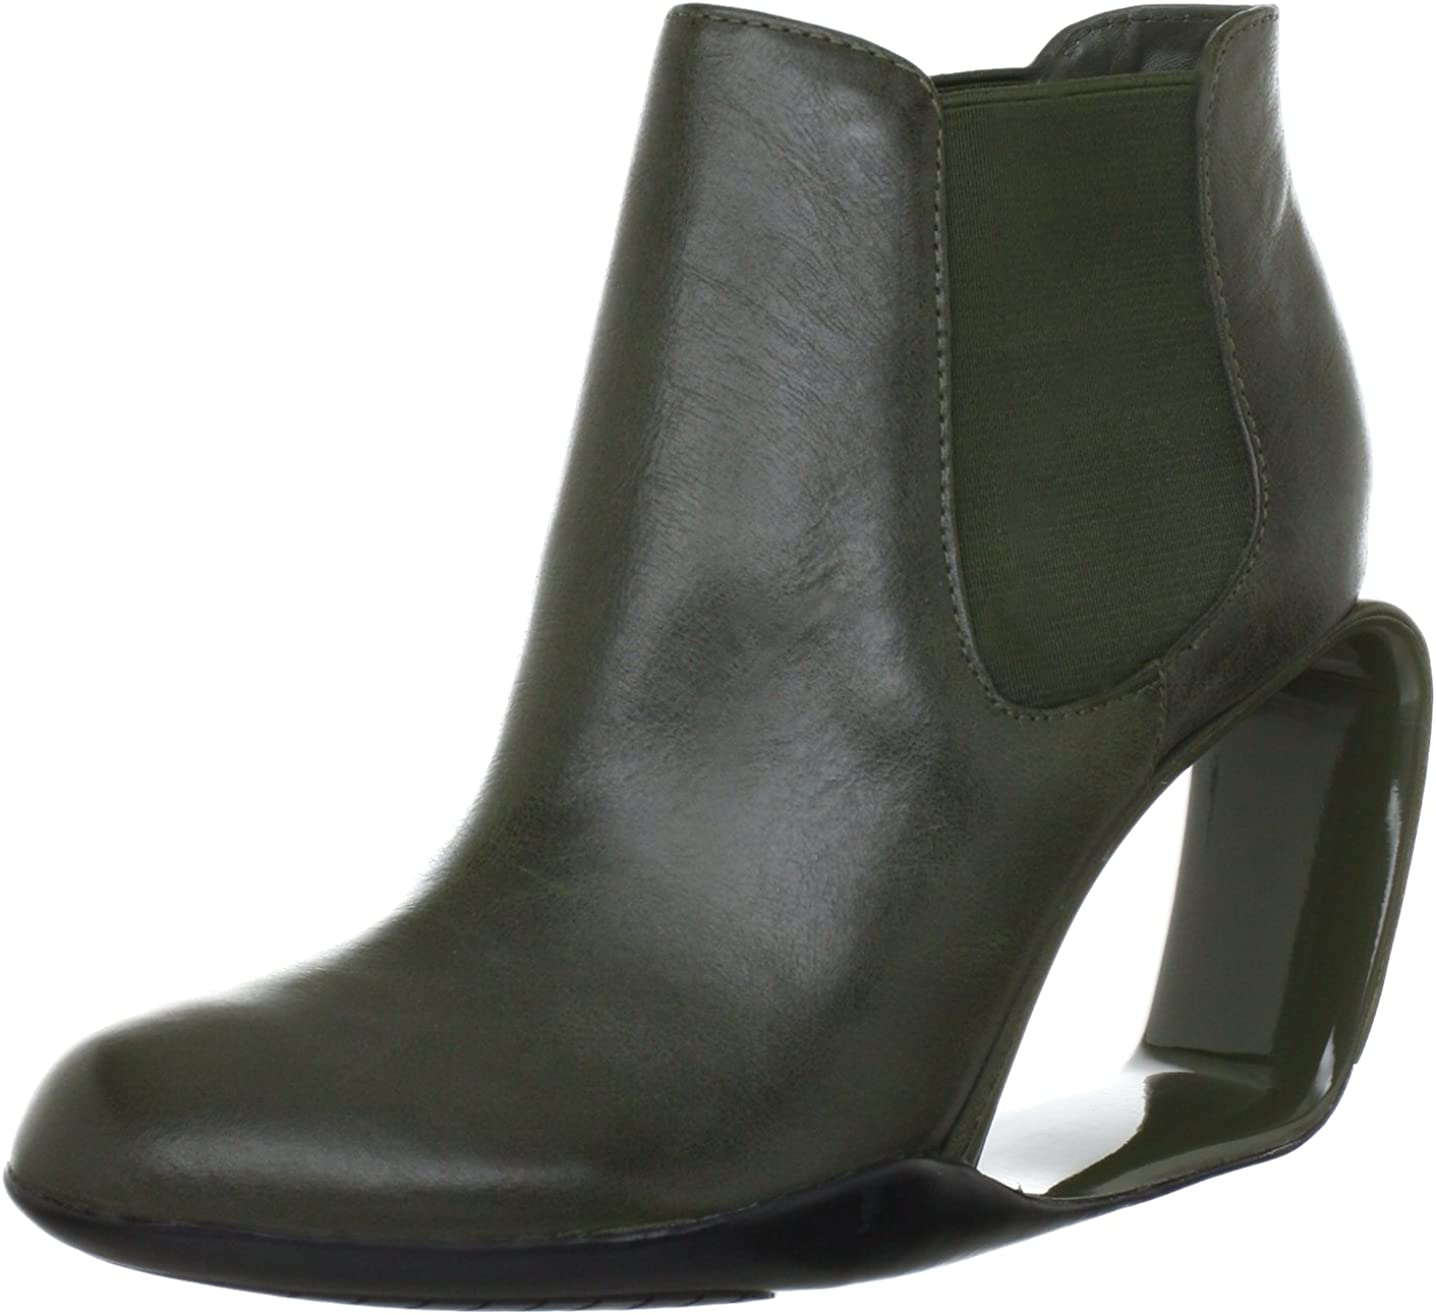 Lyst - United Nude Lola High Heel Ankle Boots in Black